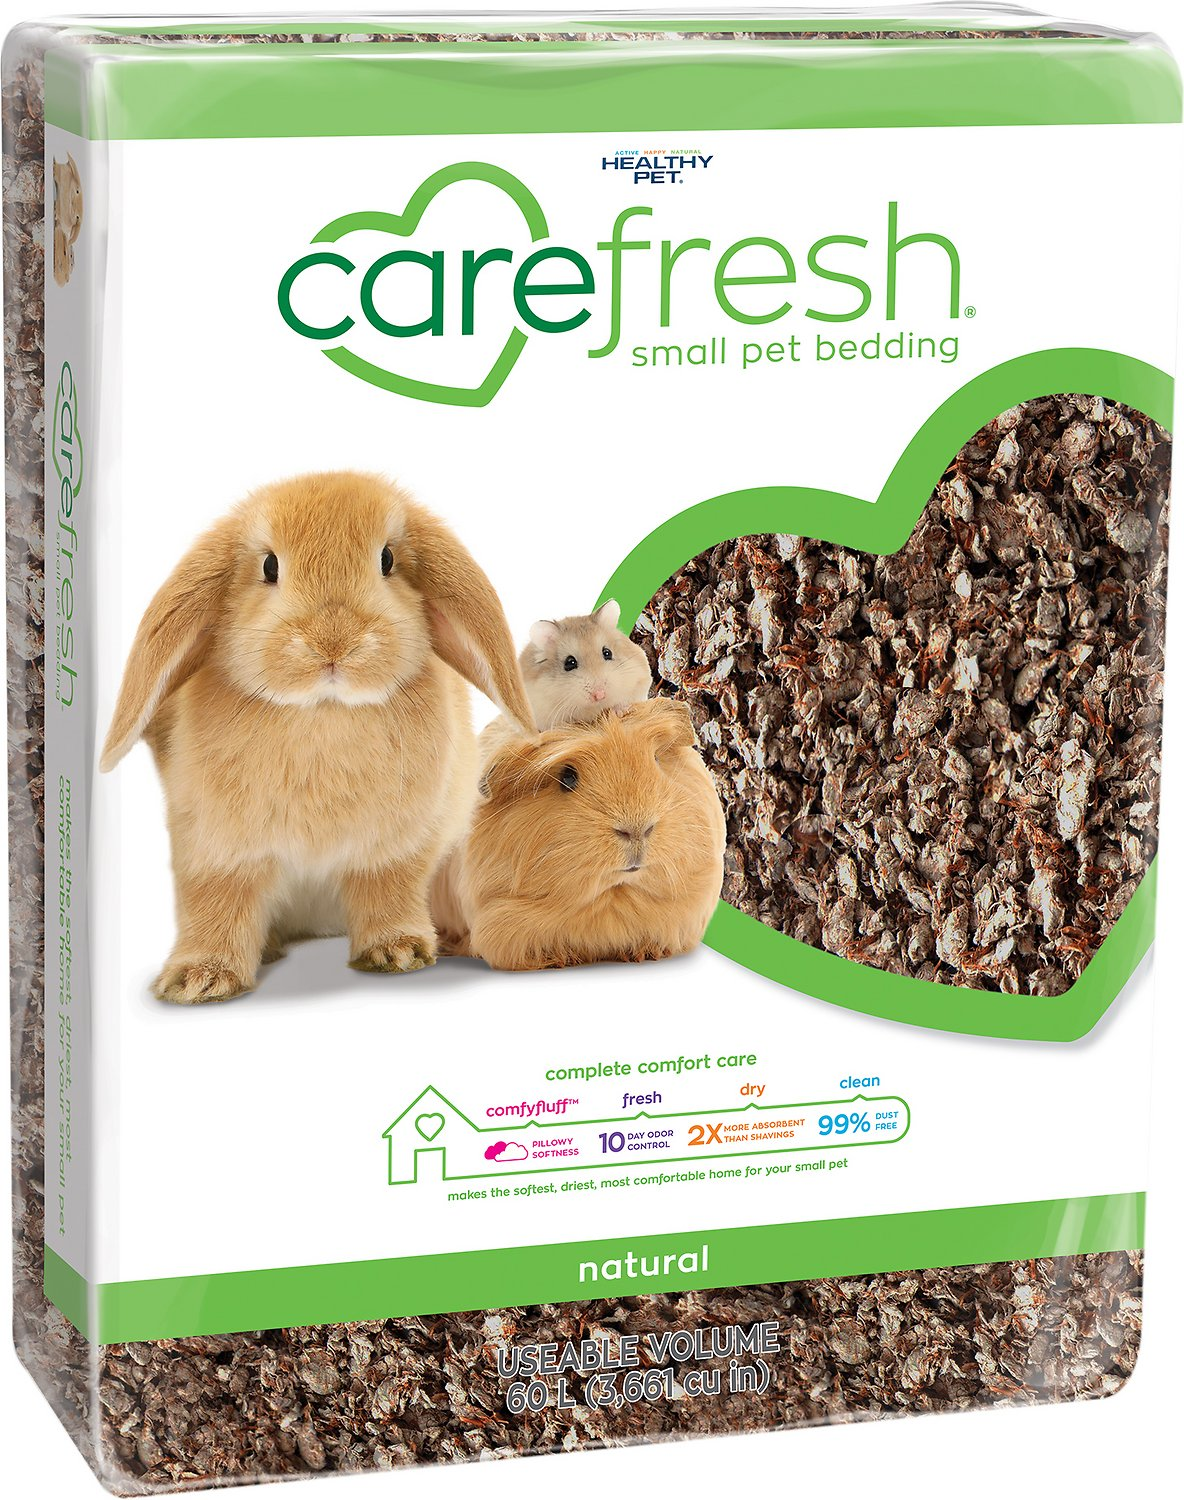 Carefresh Small Animal Bedding, Natural, 60-L